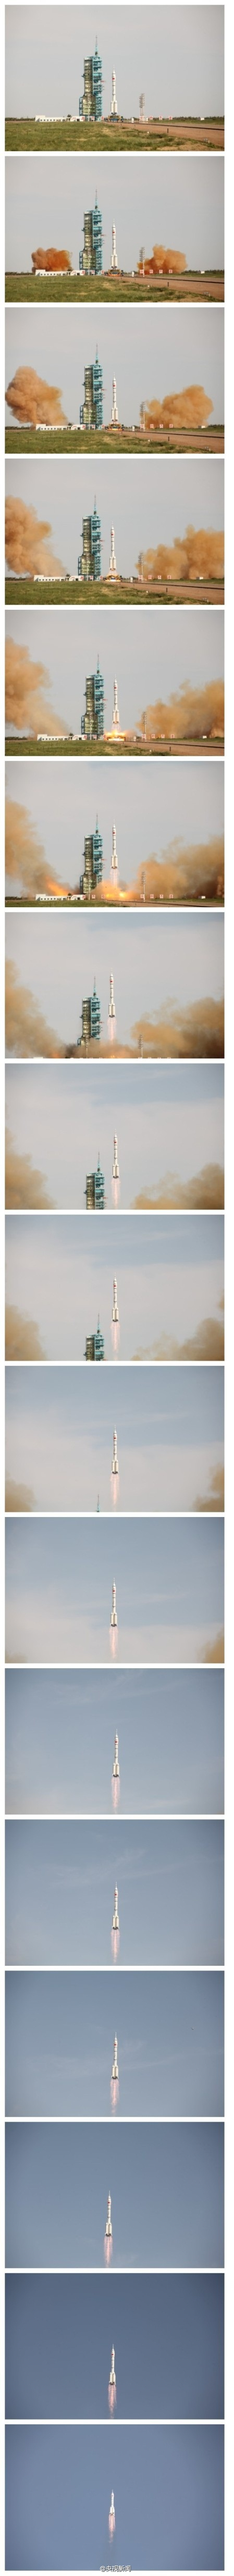 Live: China launches Shenzhou 10 | China.org.cn Live – Live updates ...